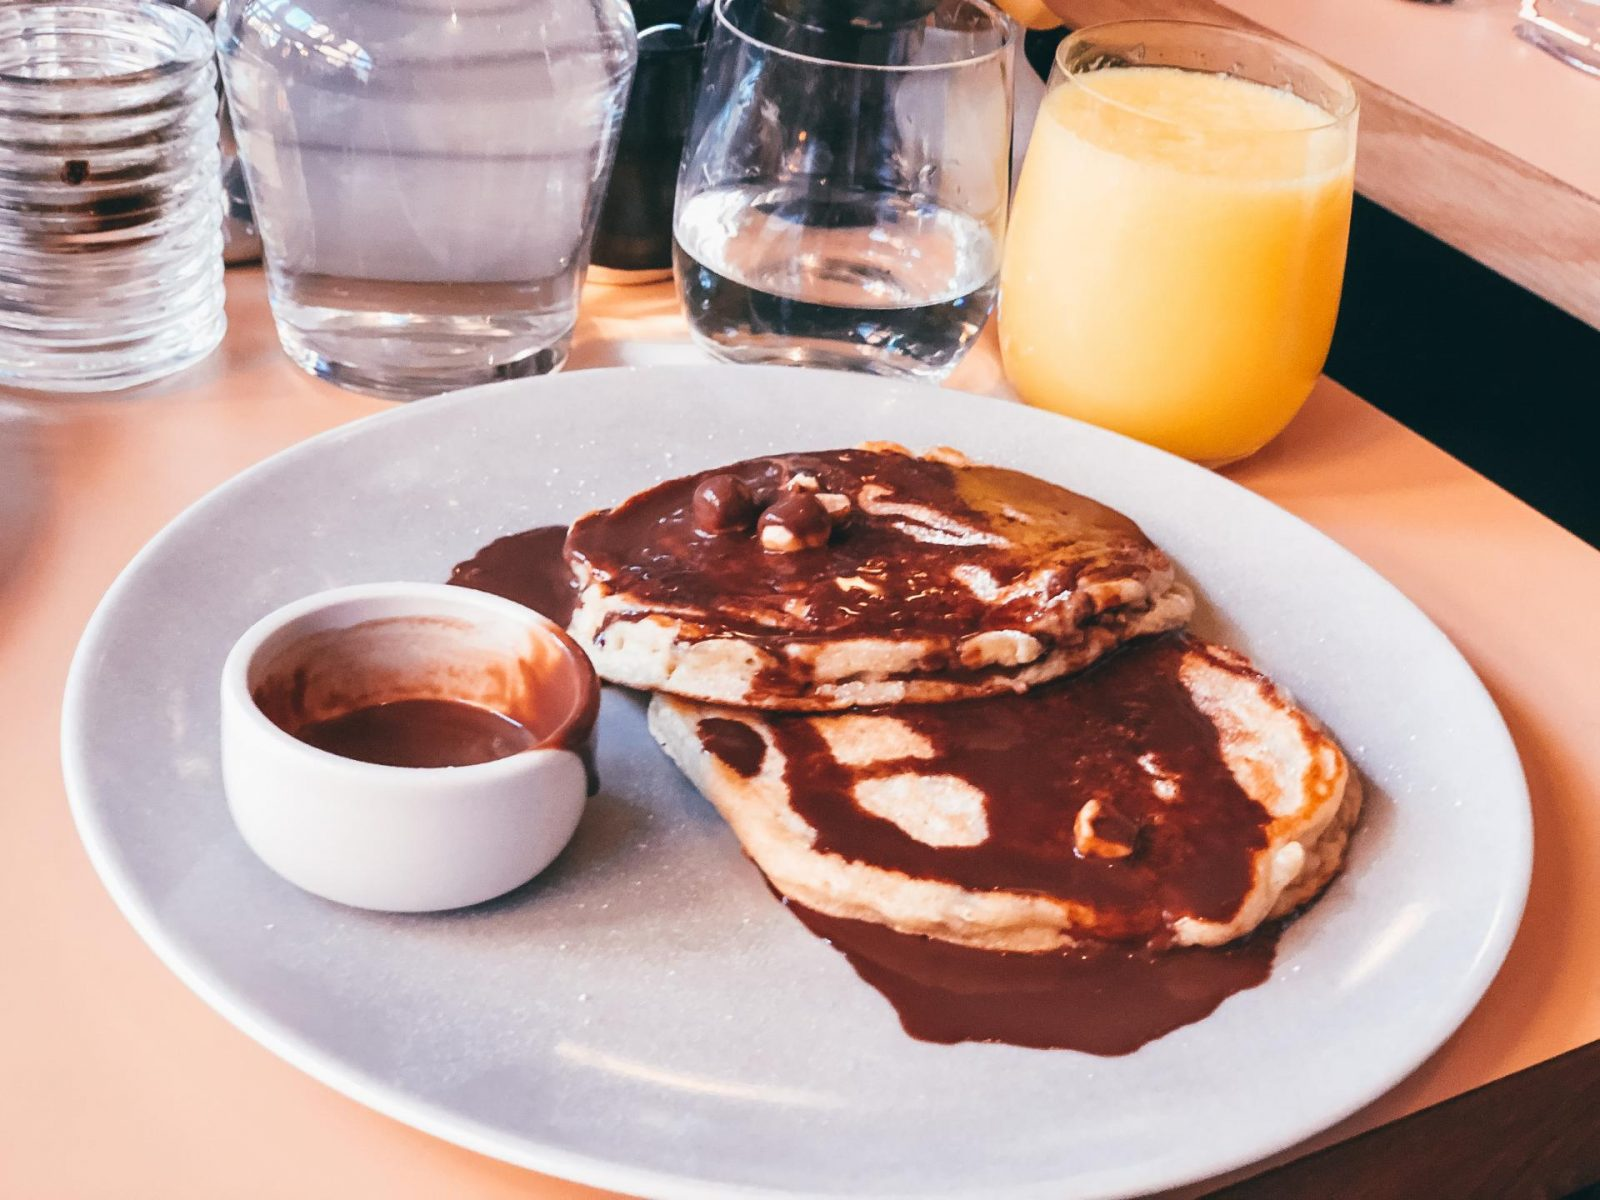 Simple Pancakes with Chocolate and Hazelnut Sauce